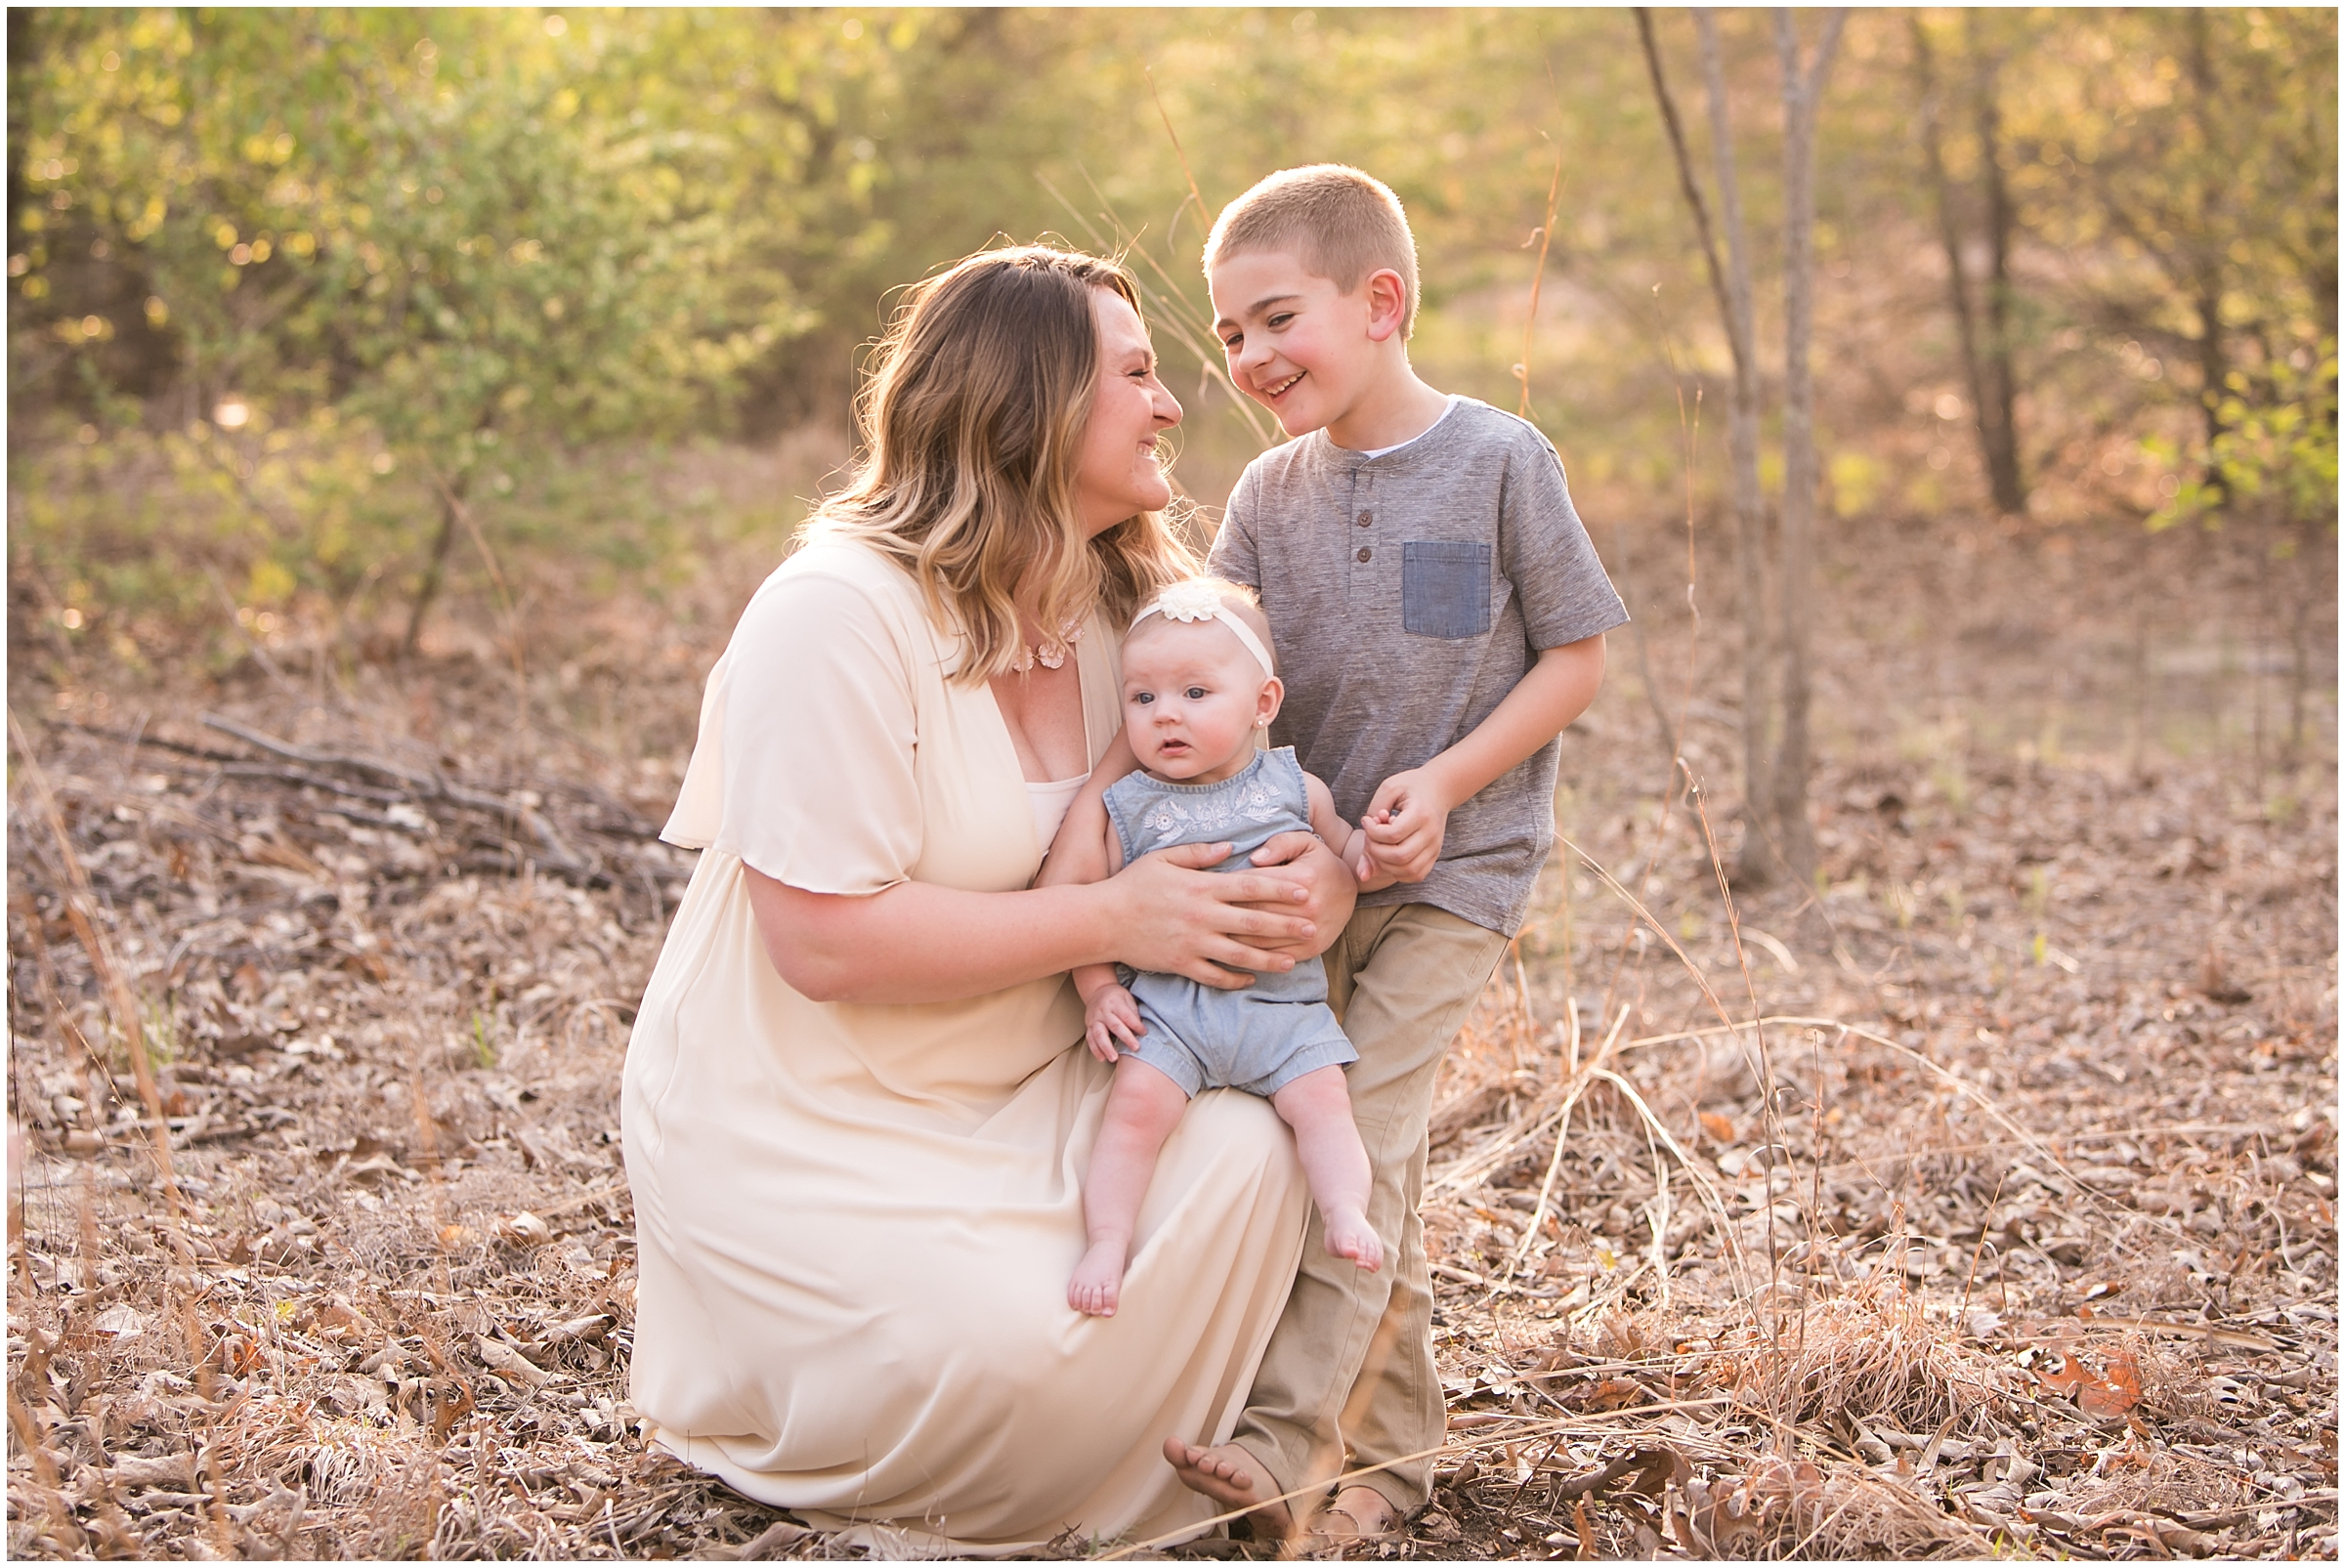 South Jersey Family Photographer - Boundary Creek Family Session